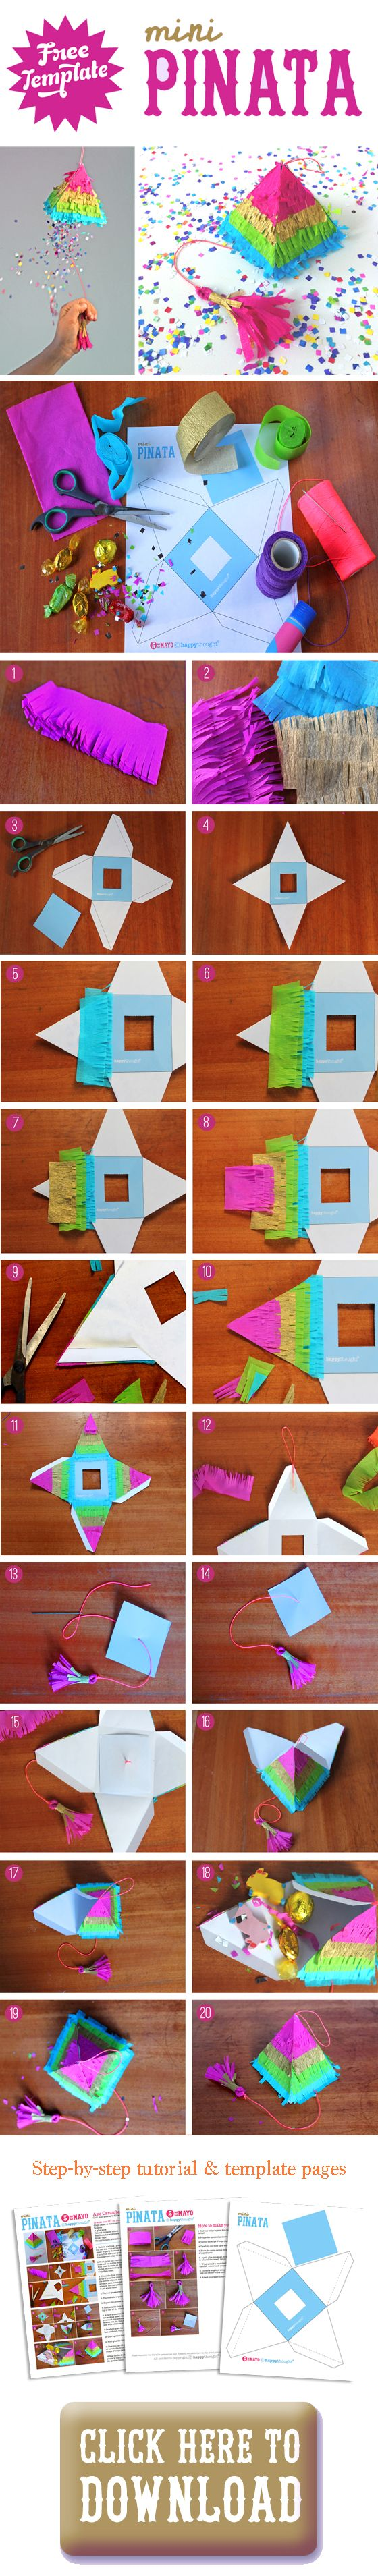 Cute mini rainbow pinata ideas for parties, classroom activities and homeschool art classes. Free photo tutorial and template included in your download. We wanted to make a fully functioning mini pinata, so ours too has a pull string. It's been tried and tested by the kids, so we can report that it works beautifully! Also how to make a tassel is featured on our blog here - https://happythought.co.uk/craft/tutorials/how-to-make-a-pinata